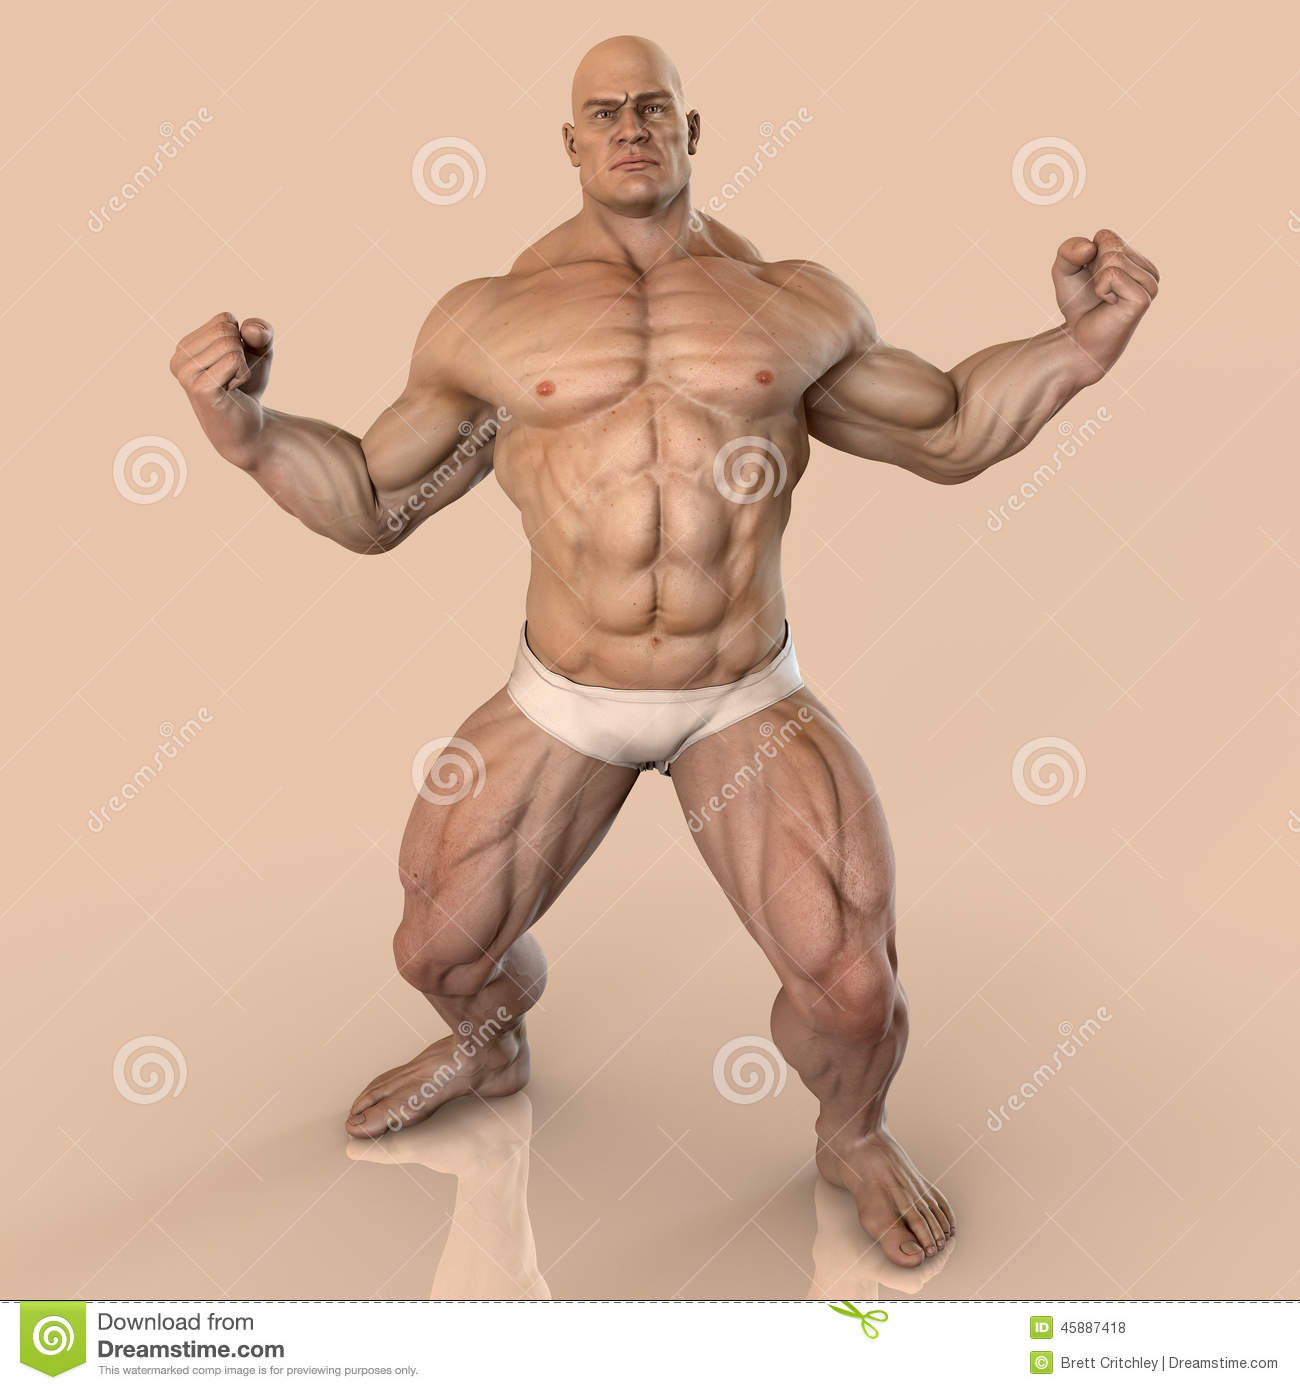 Big gay muscle